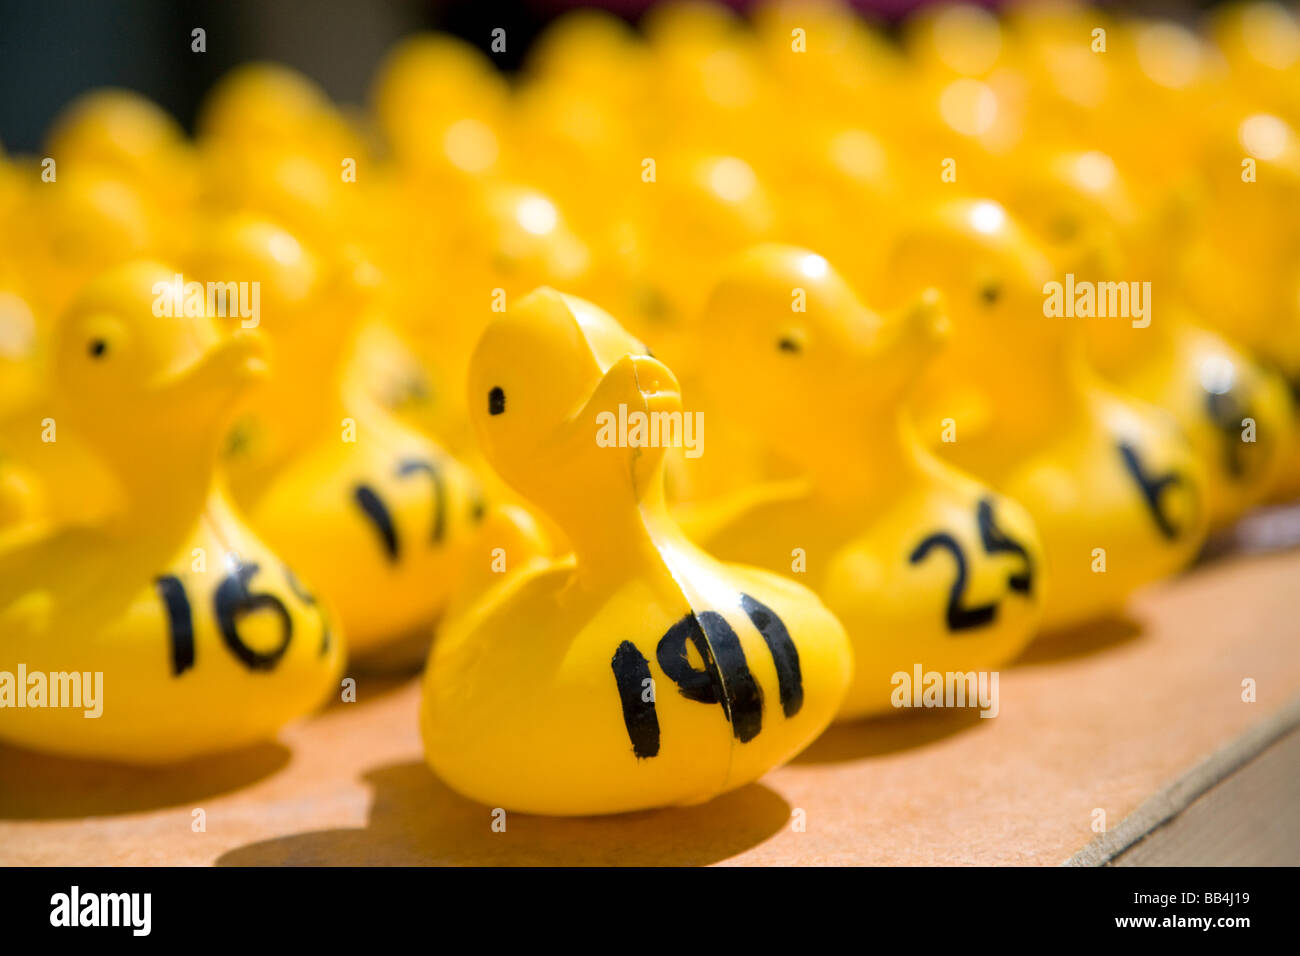 Participants in a Charity plastic duck race at Wallingford, Oxfordshire, UK - Stock Image